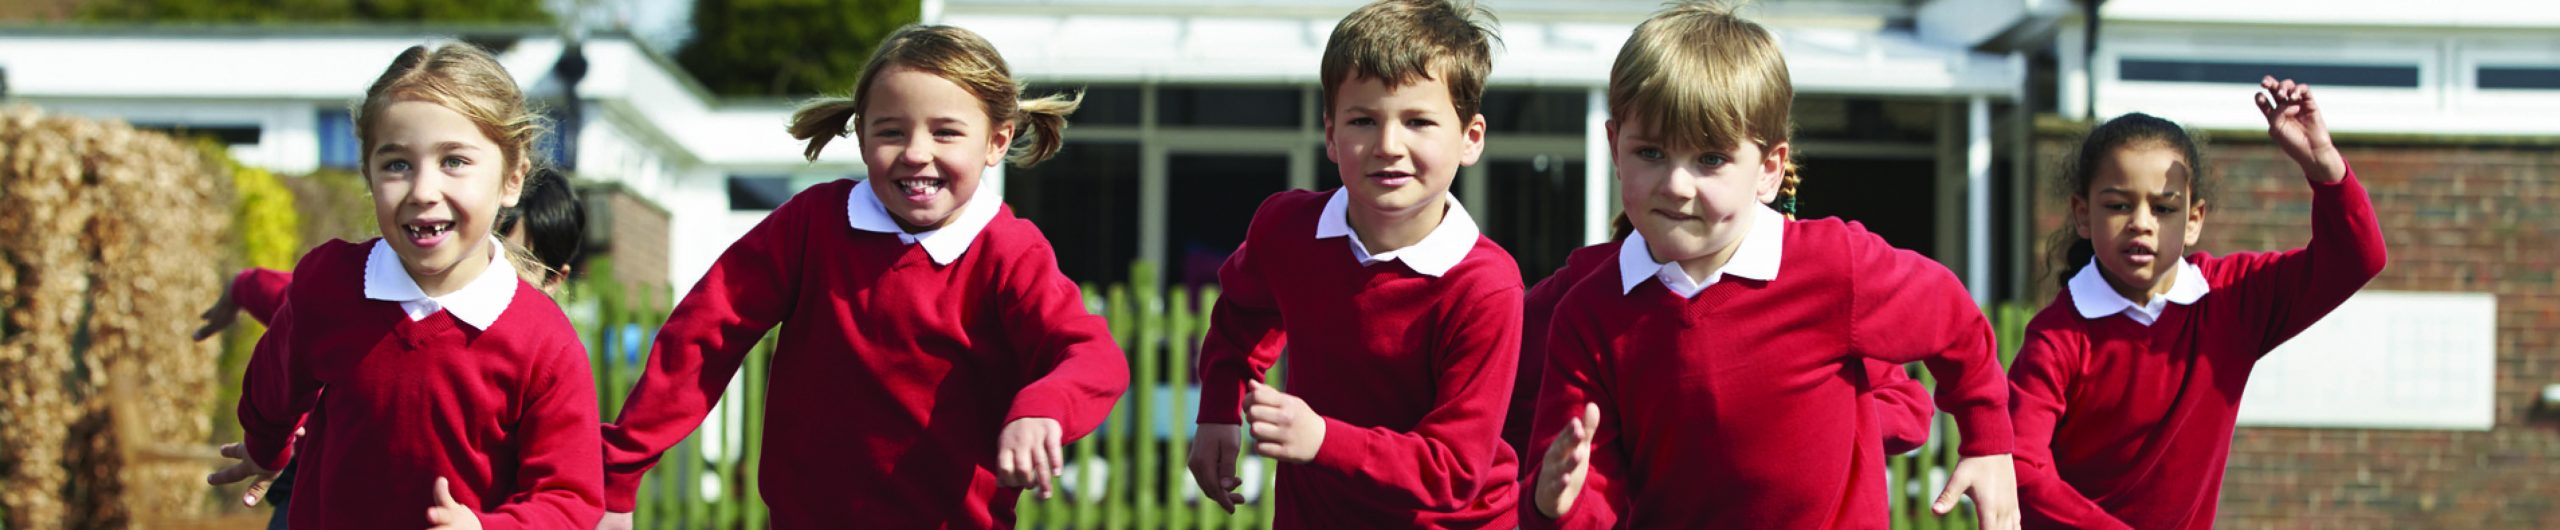 Children running at school Early Years